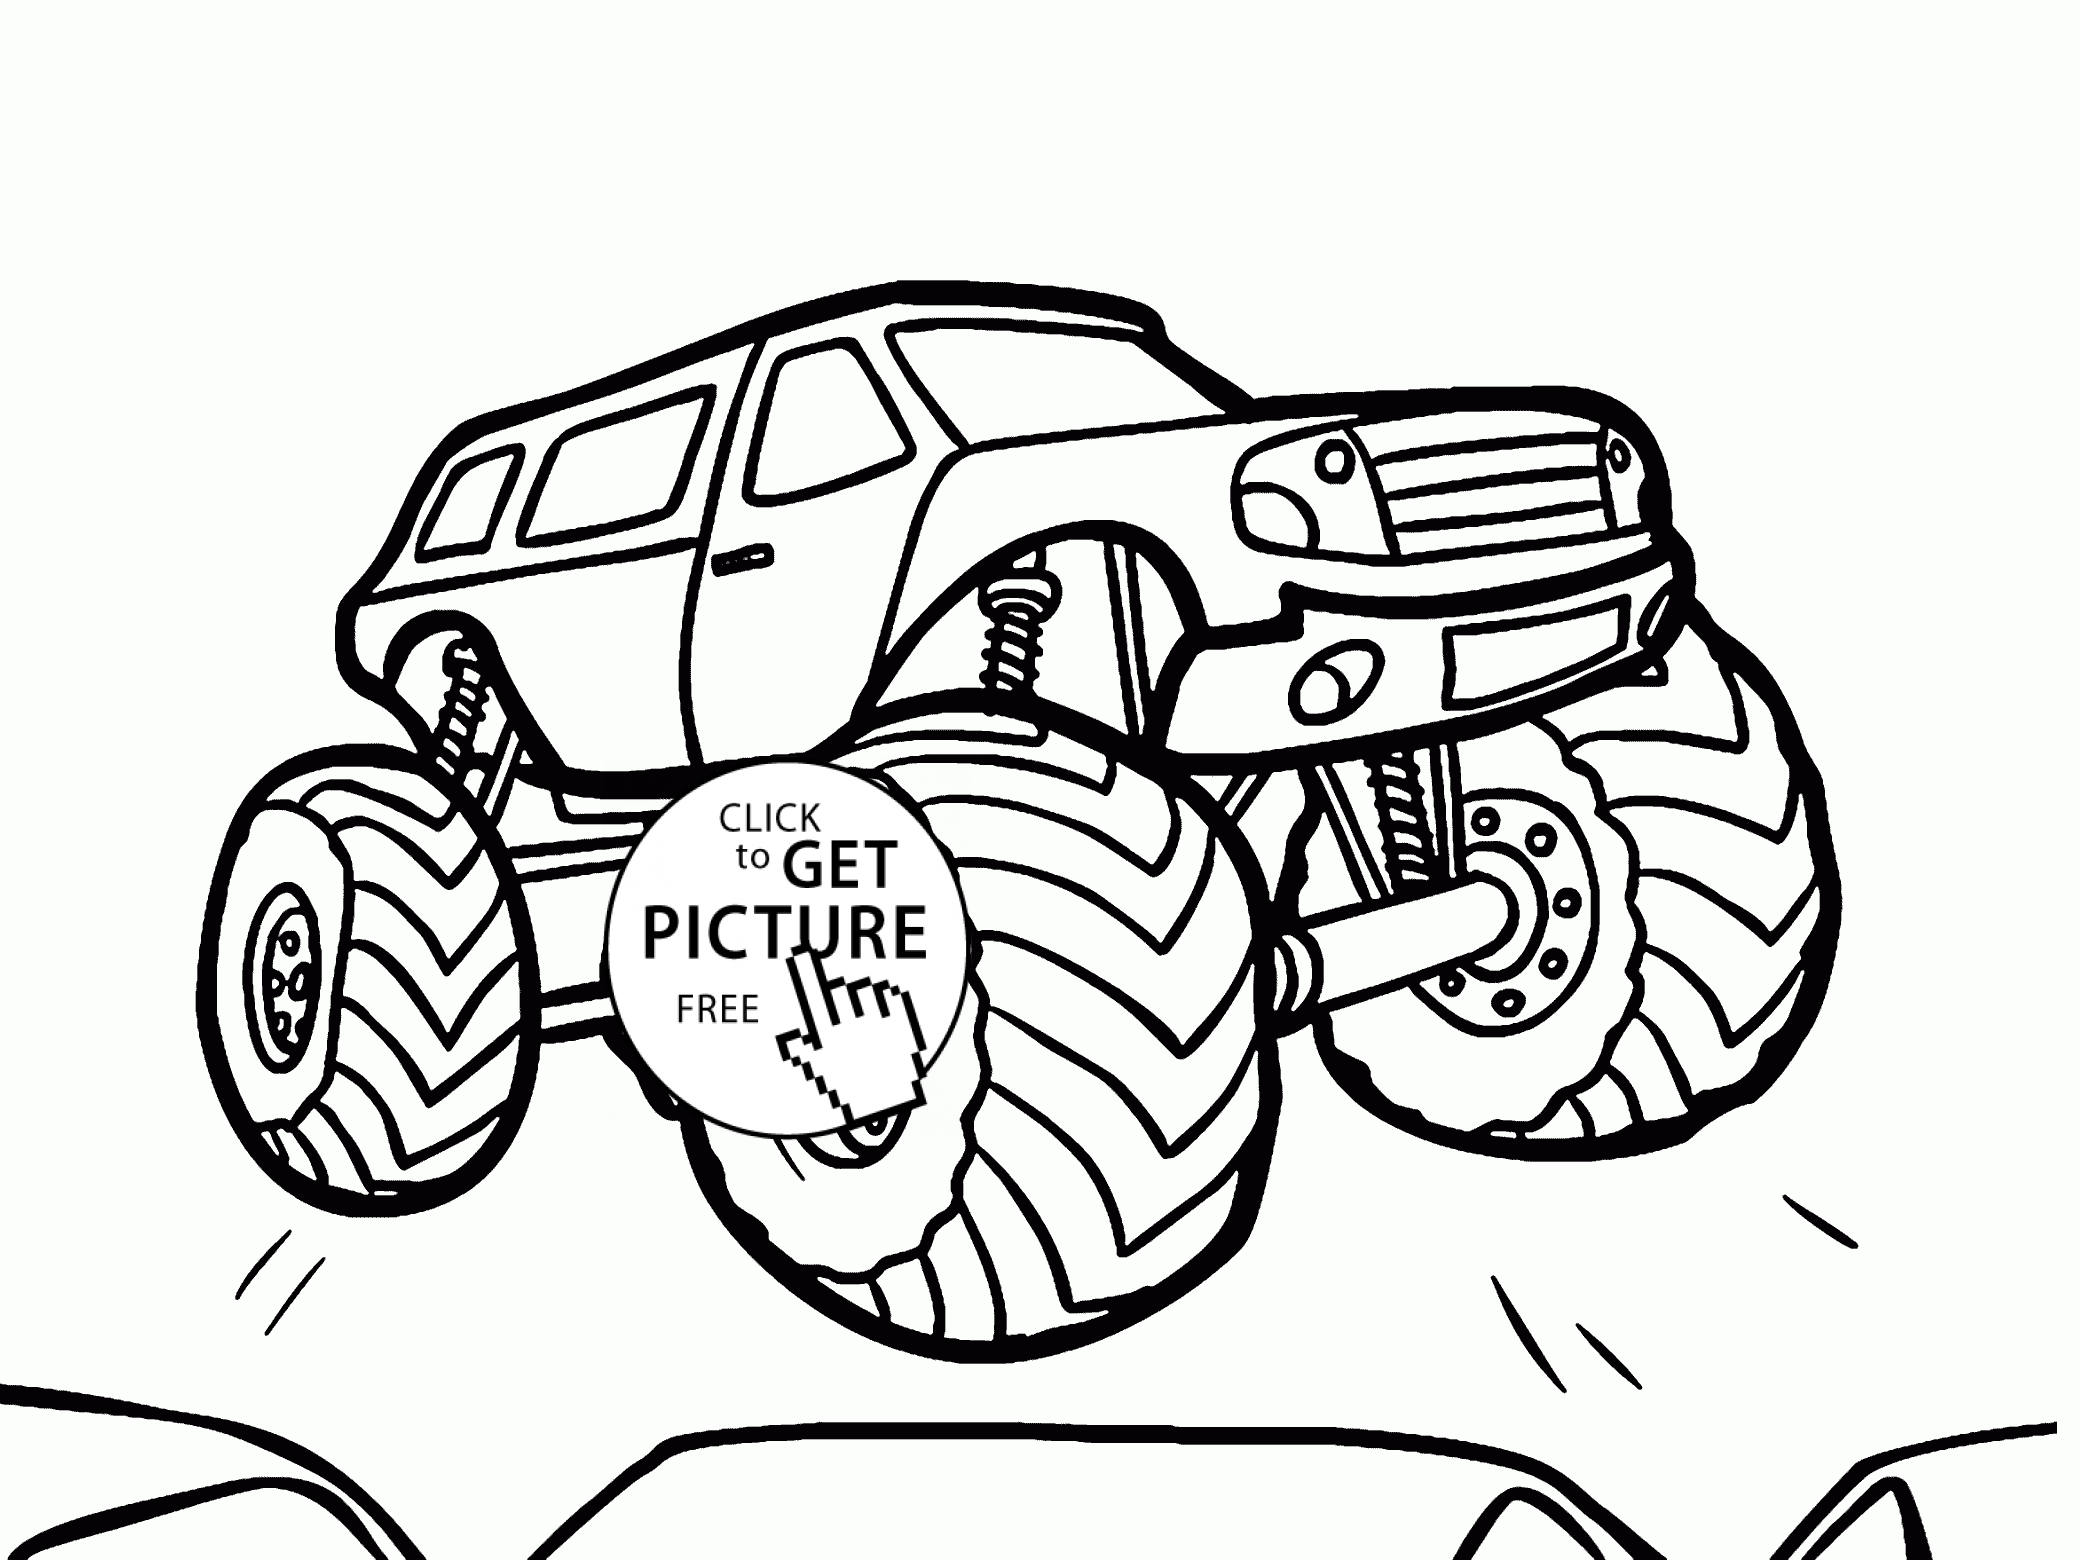 21 Bigfoot Coloring Page Selection | FREE COLORING PAGES - Part 3